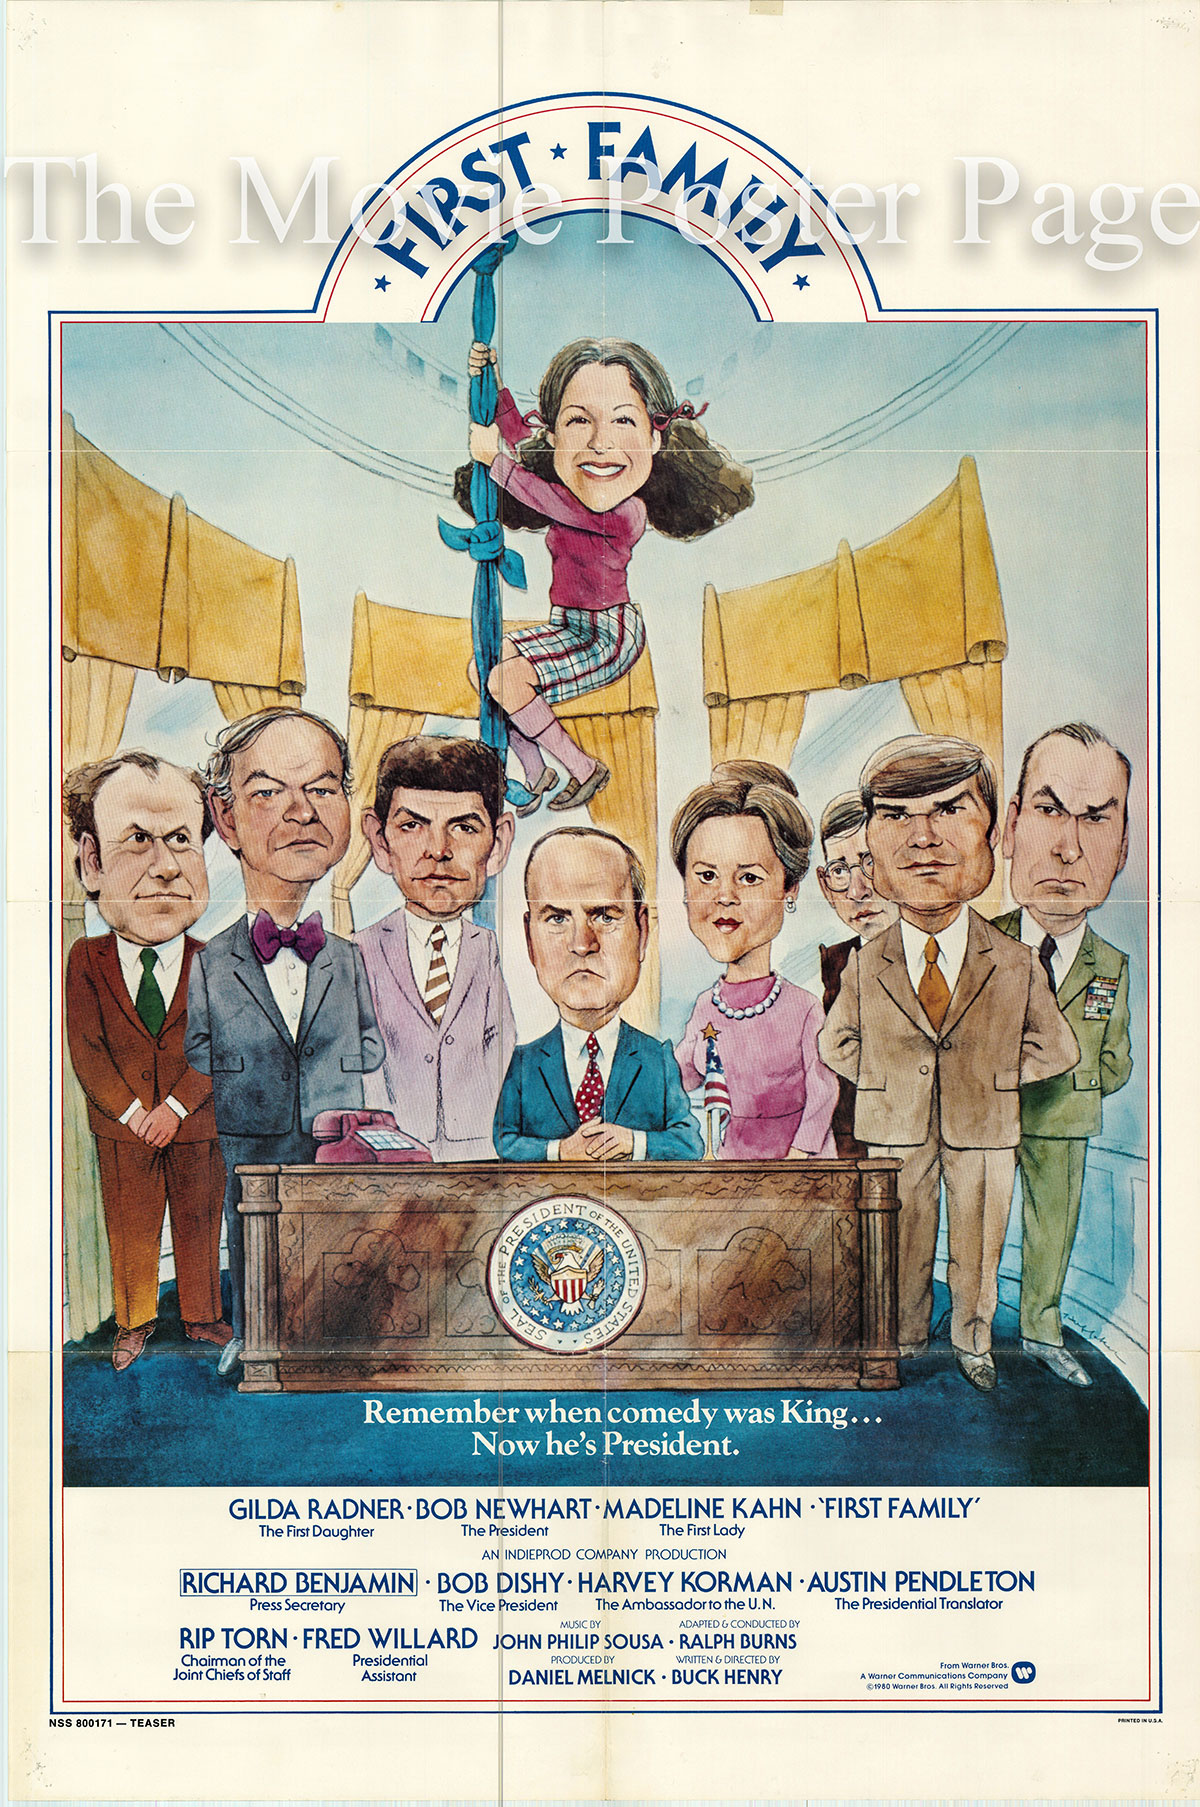 Pictured is a US one-sheet poster for the 1980 Buck Henry film First Family starring Bob Newhart as the president.